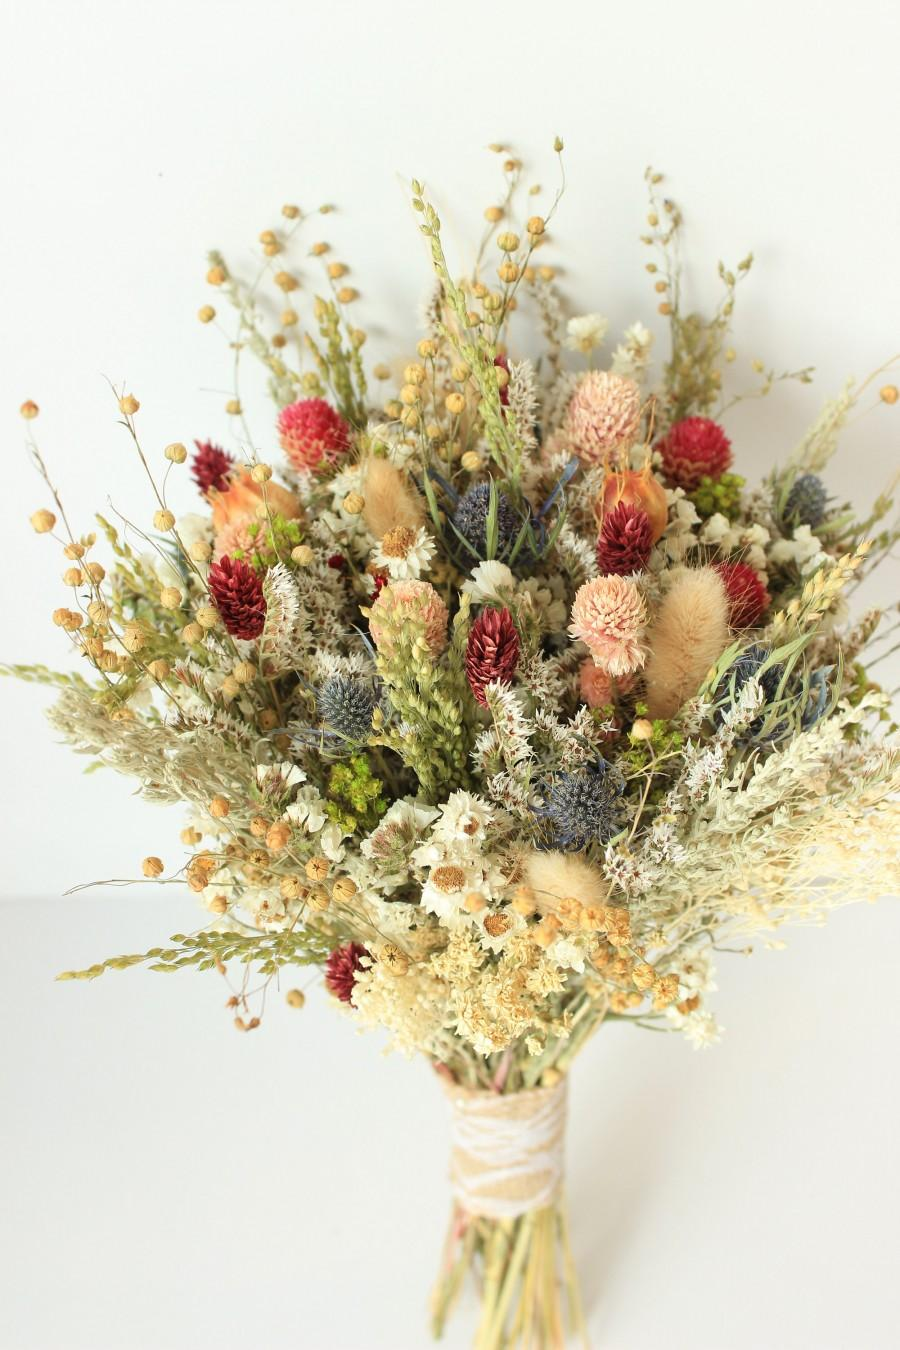 Mariage - Blue Thistle Burgundy Dried Flowers /Preserved Daisy Flowers Greenery Bouquet /Mix of Blush Peach flowers / Fall Winter Bridal bouquet